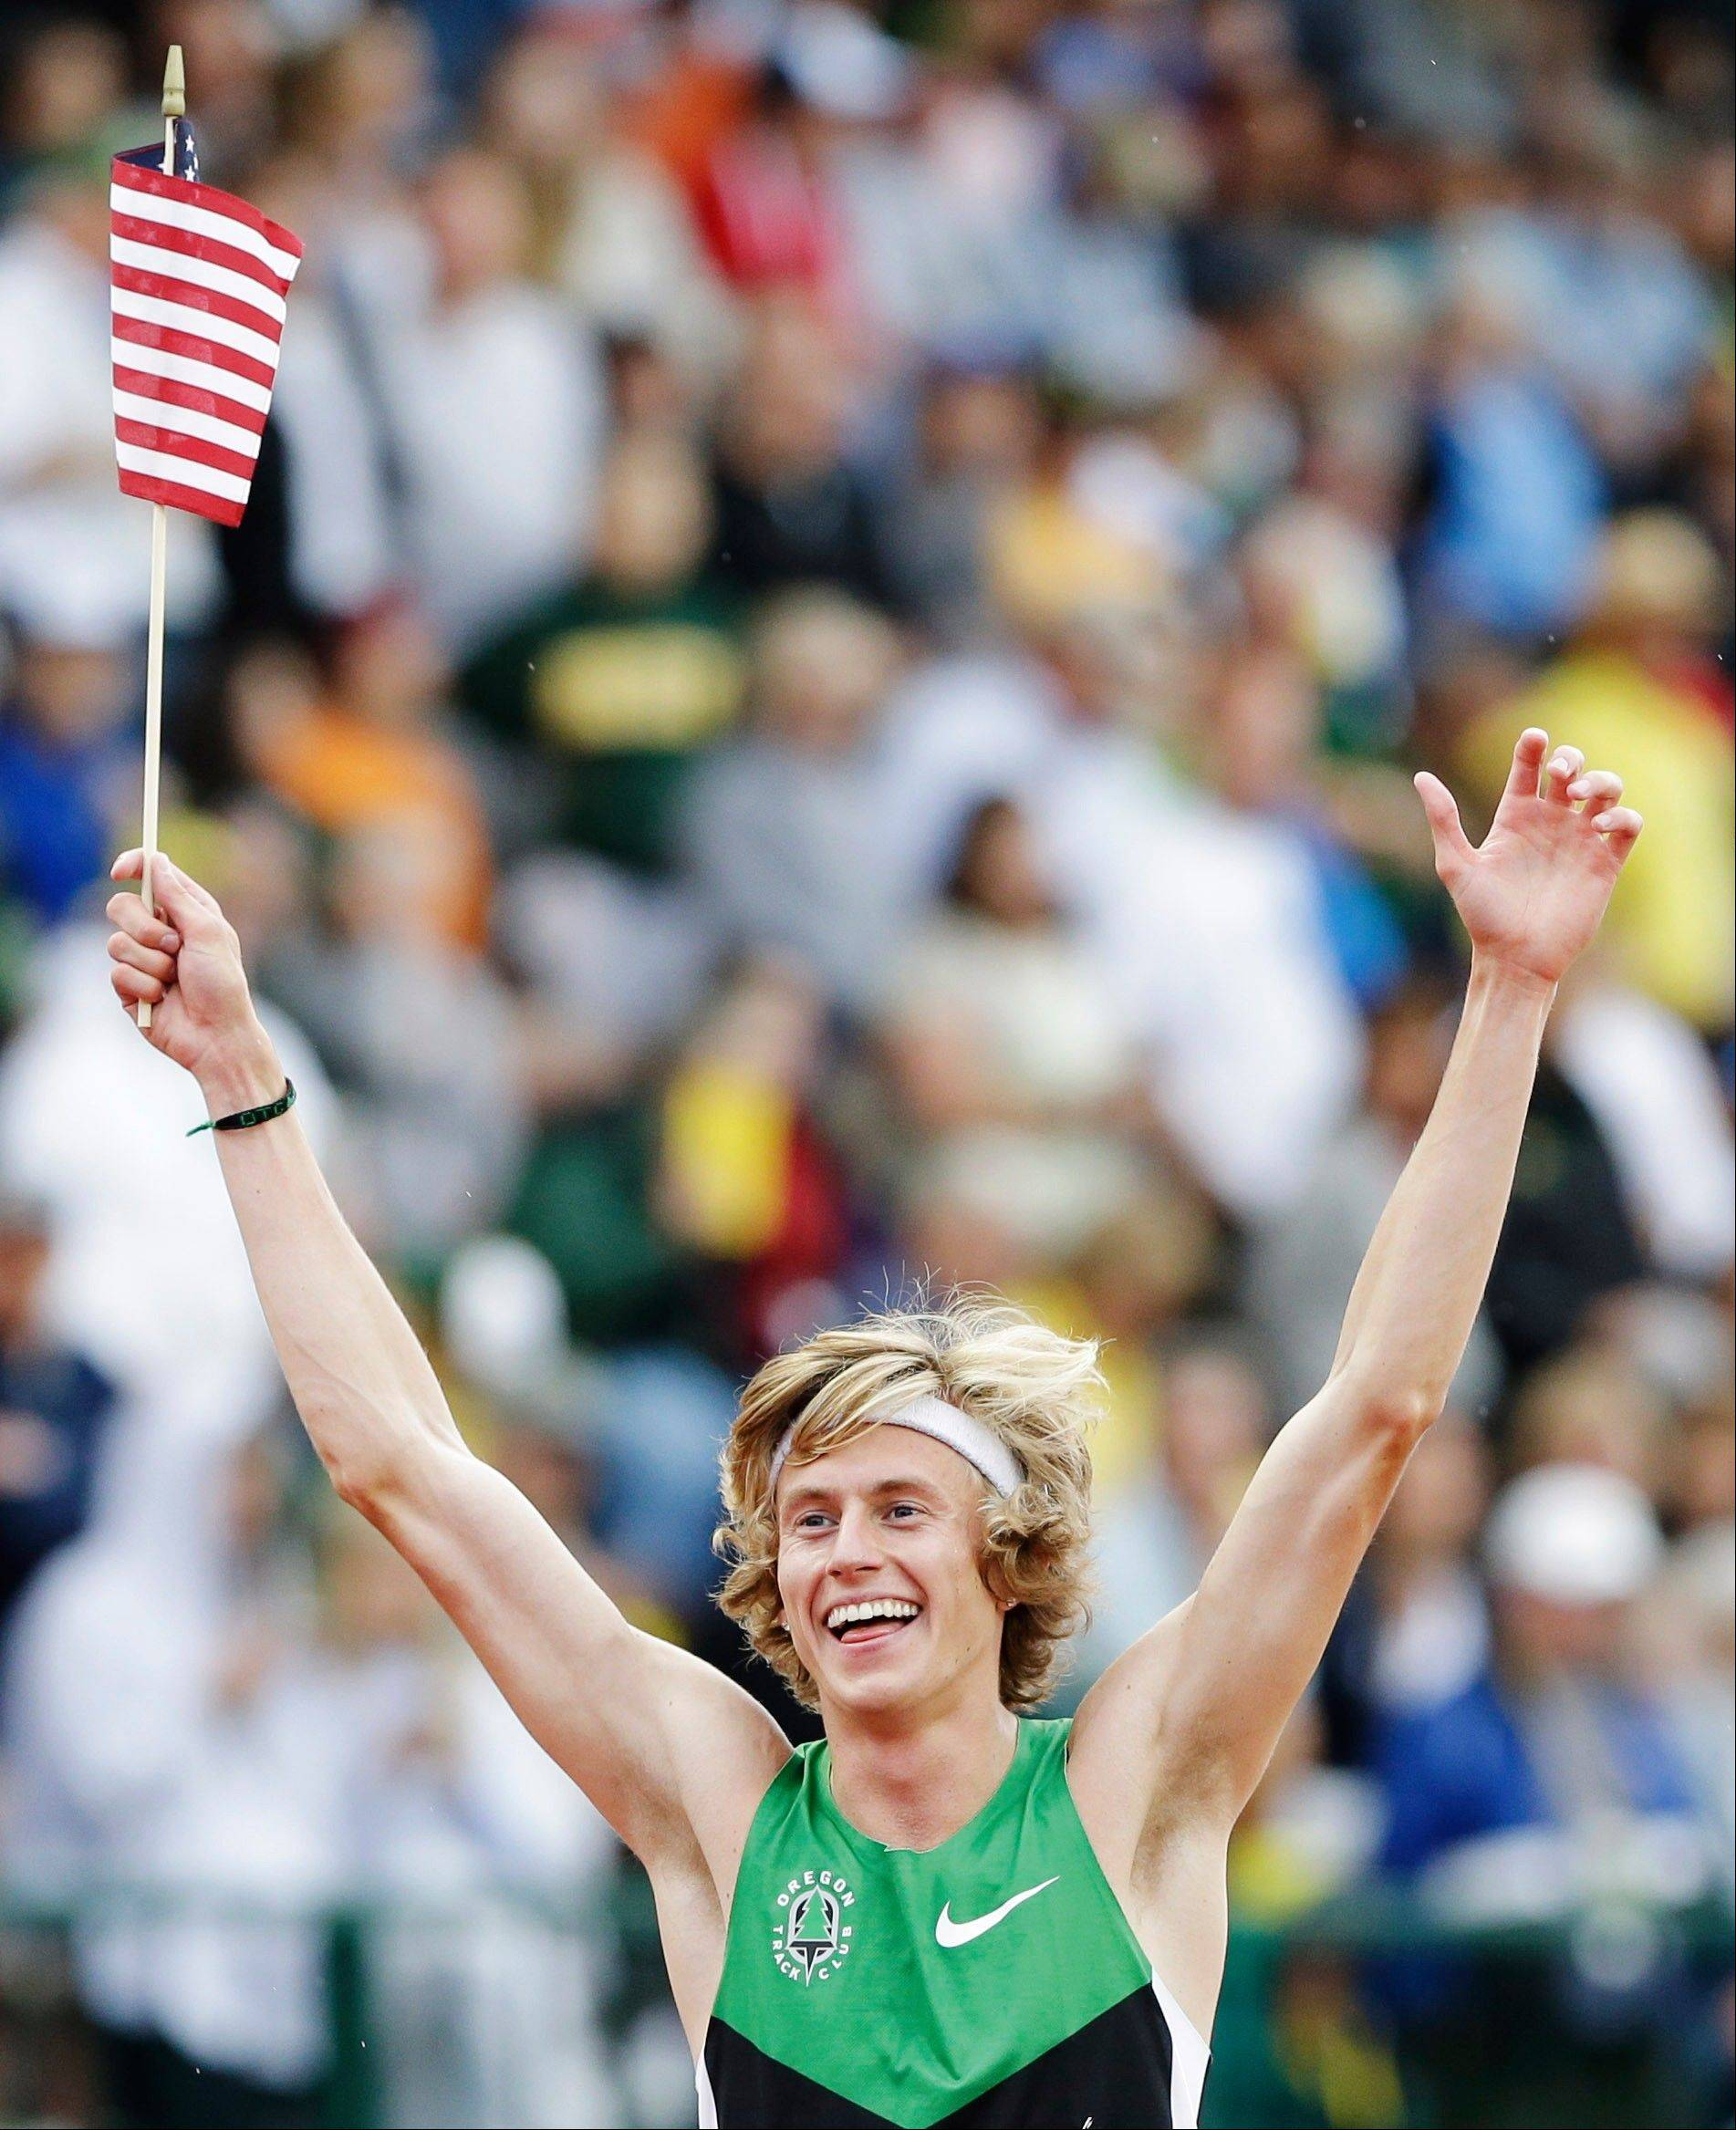 Evan Jager celebrates after winning the men's 3000 meter steeplechase at the U.S. Olympic Track and Field Trials Thursday, June 28, 2012, in Eugene, Ore.